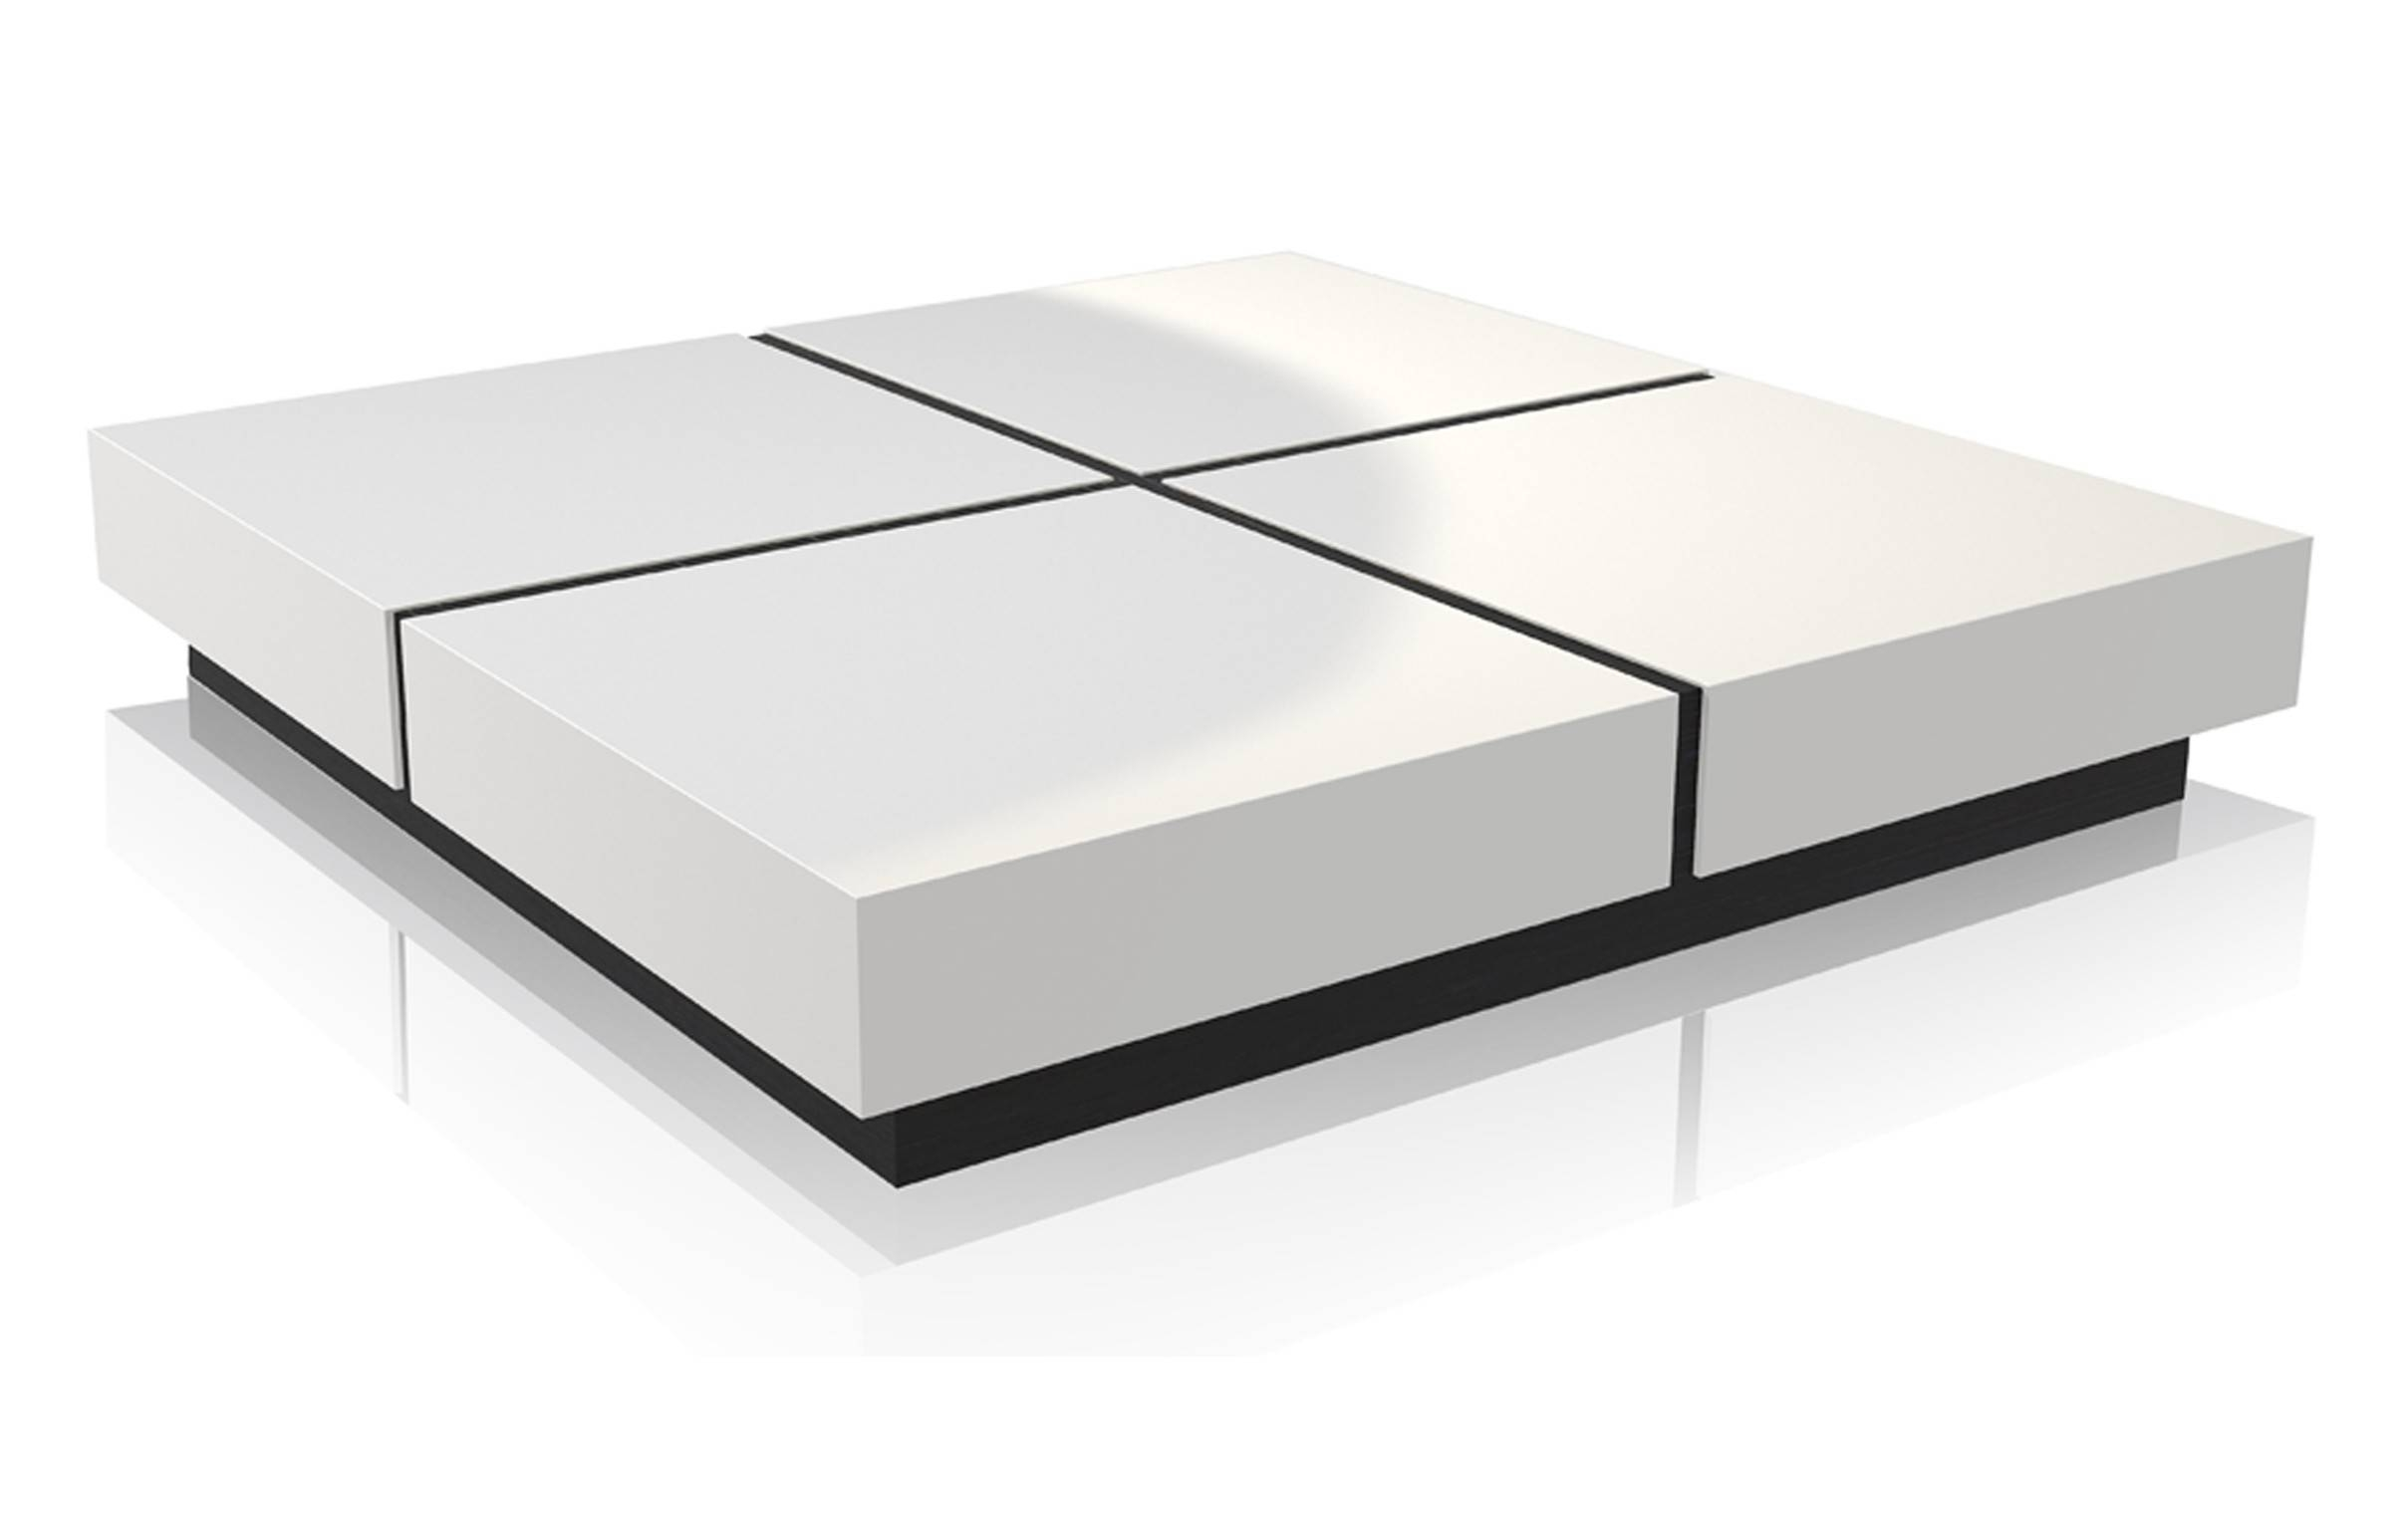 Contemporary White Coffee Tables | Coffee Tables Decoration throughout White Coffee Tables With Storage (Image 13 of 30)